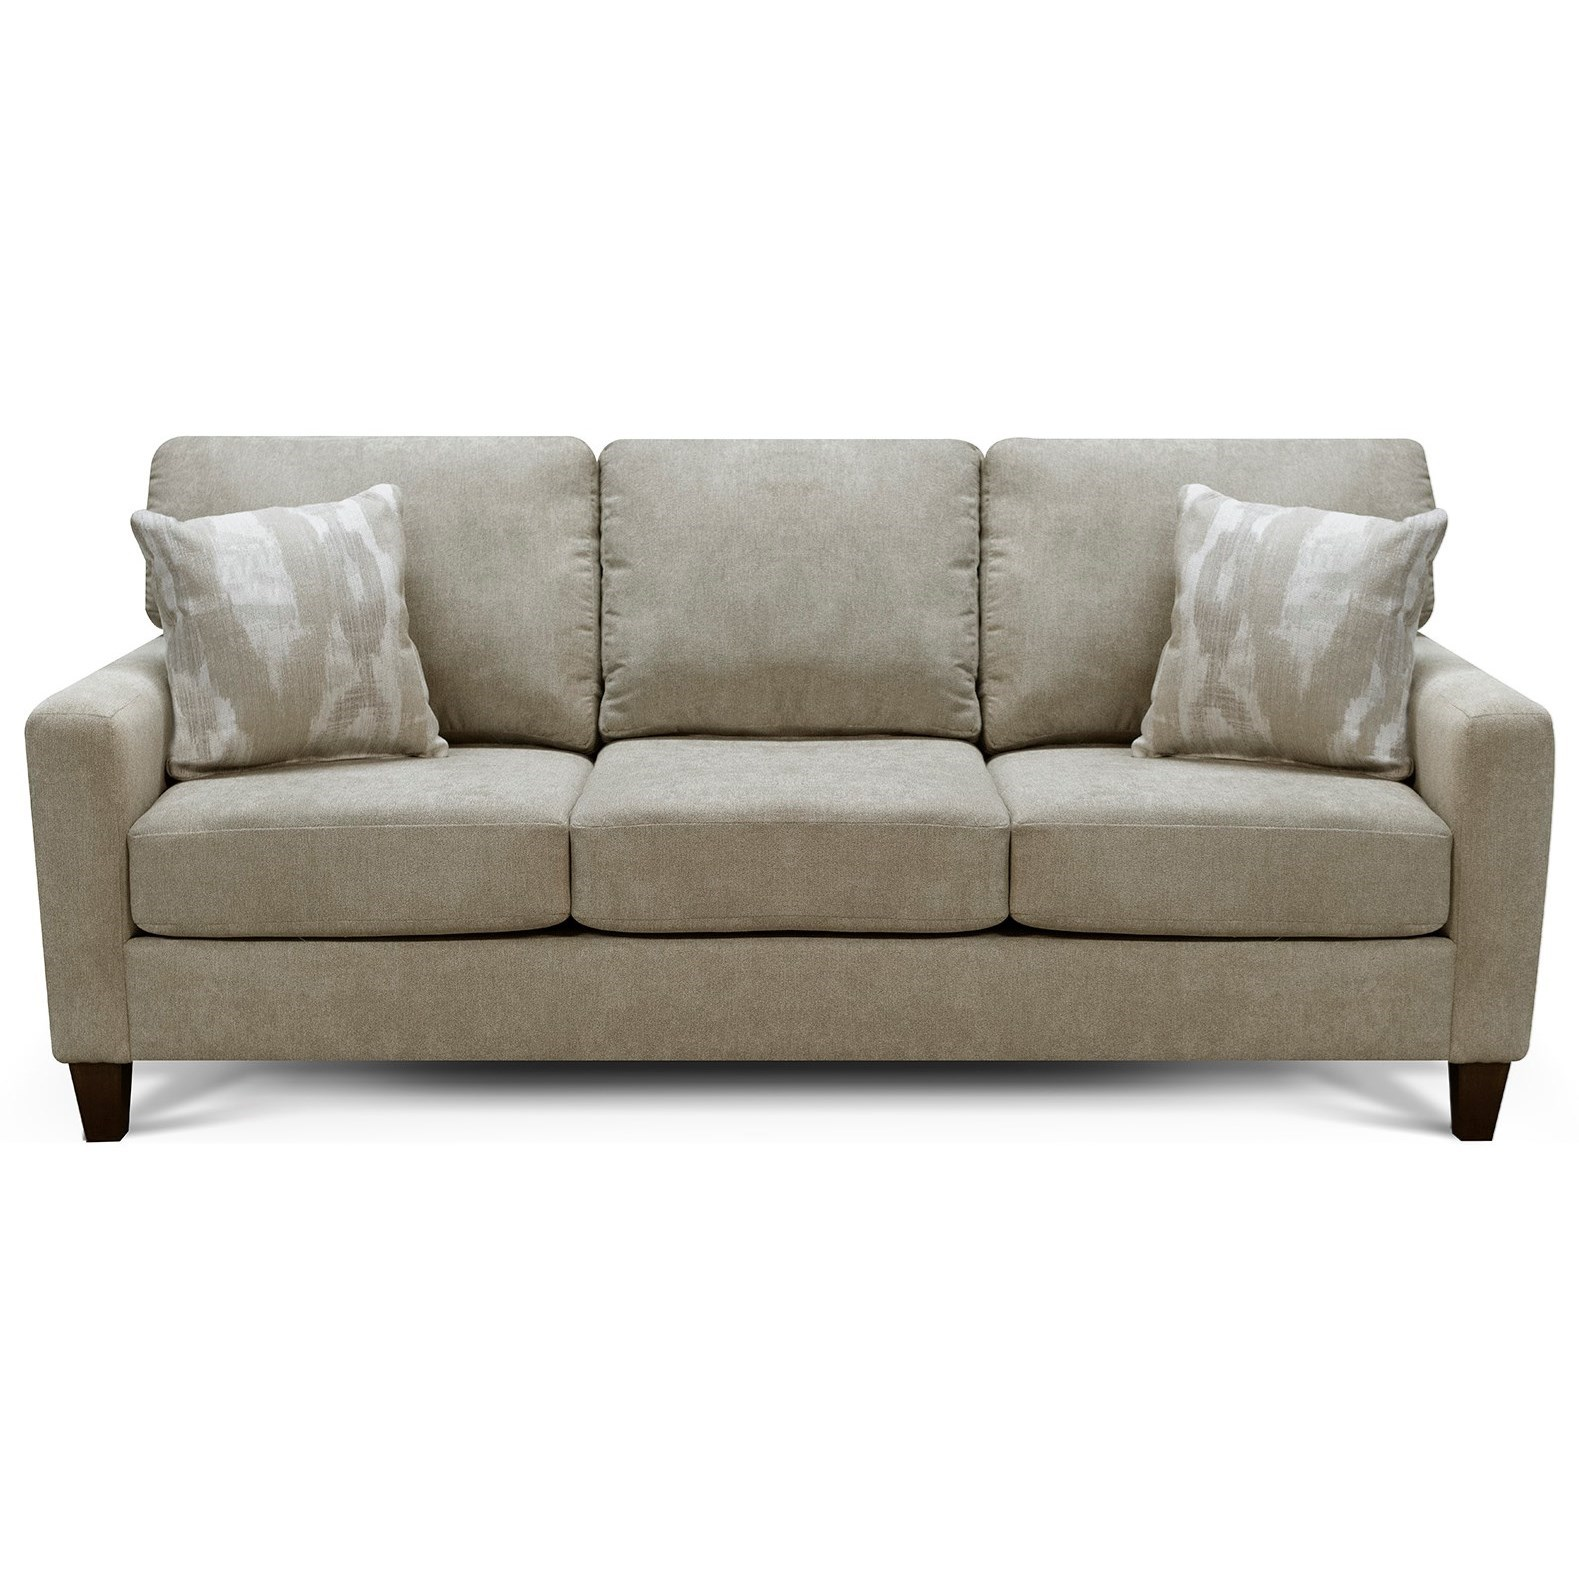 Roxy Sofa by England at Lapeer Furniture & Mattress Center